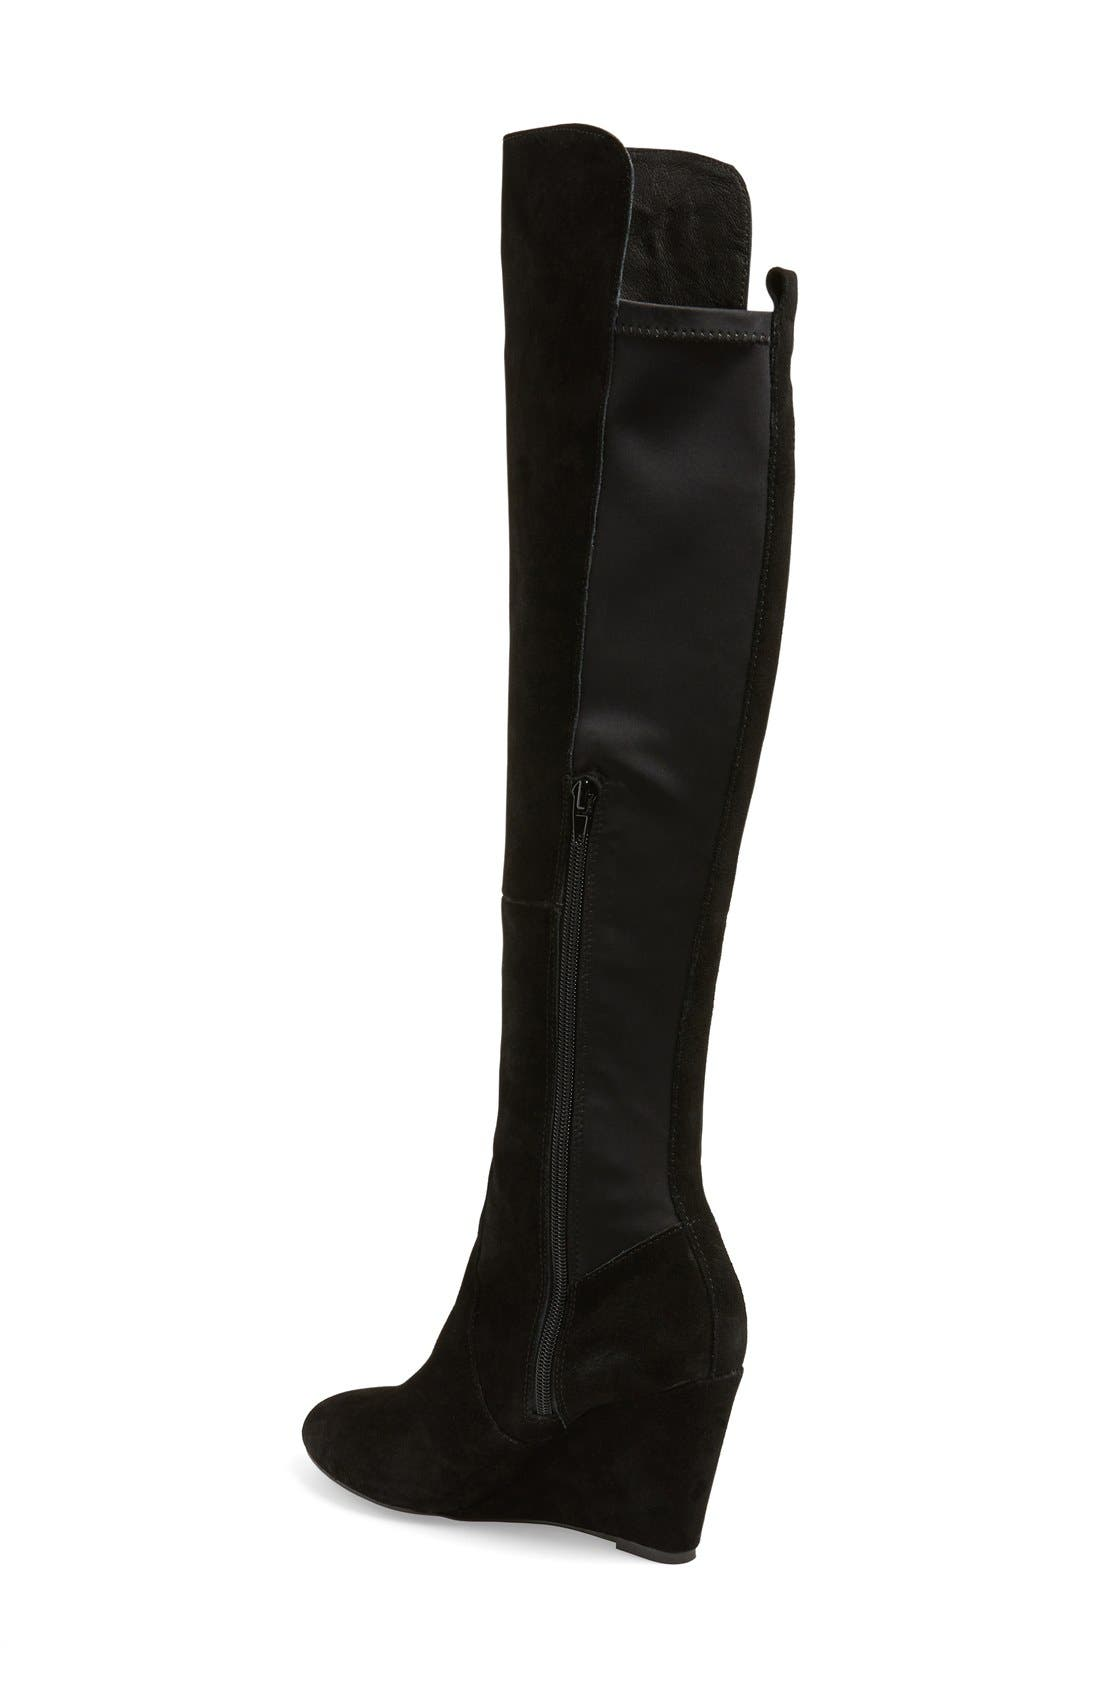 CHARLES BY CHARLES DAVID, 'Edie' Over the Knee Boot, Alternate thumbnail 2, color, 002